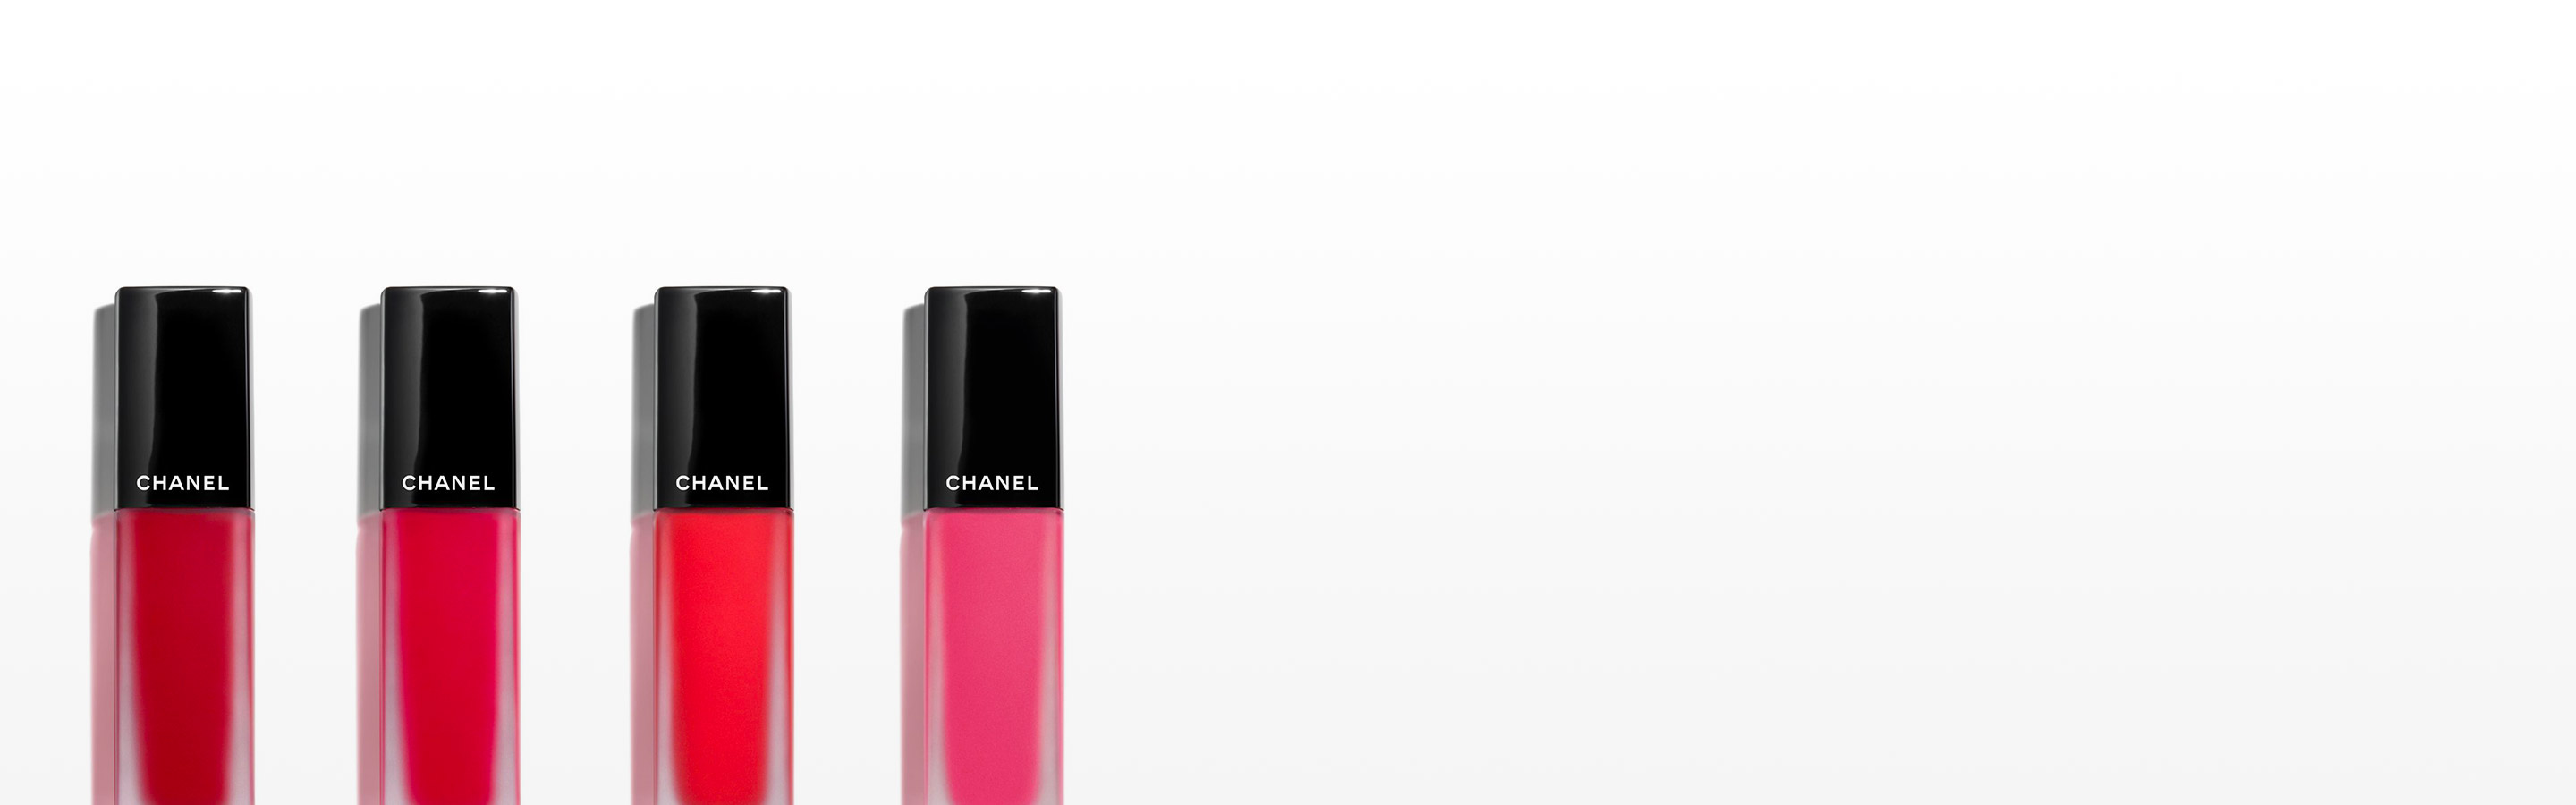 Fluid-Lippenstifte - CHANEL